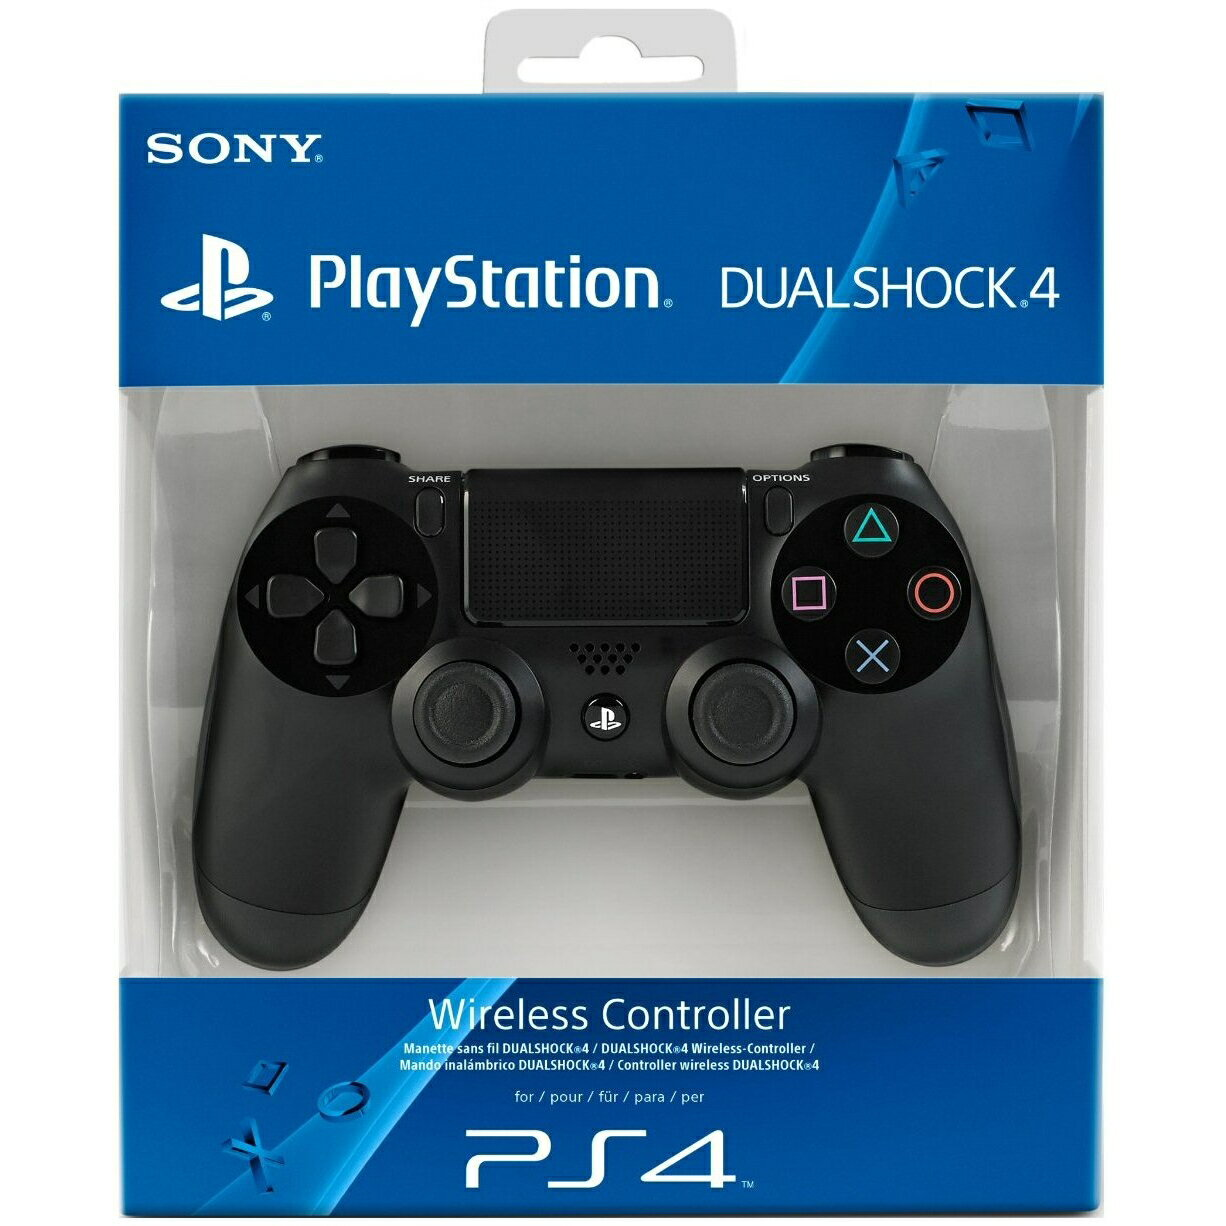 Sony PS4 DualShock 4 Controller - Black (PlayStation 4) 6